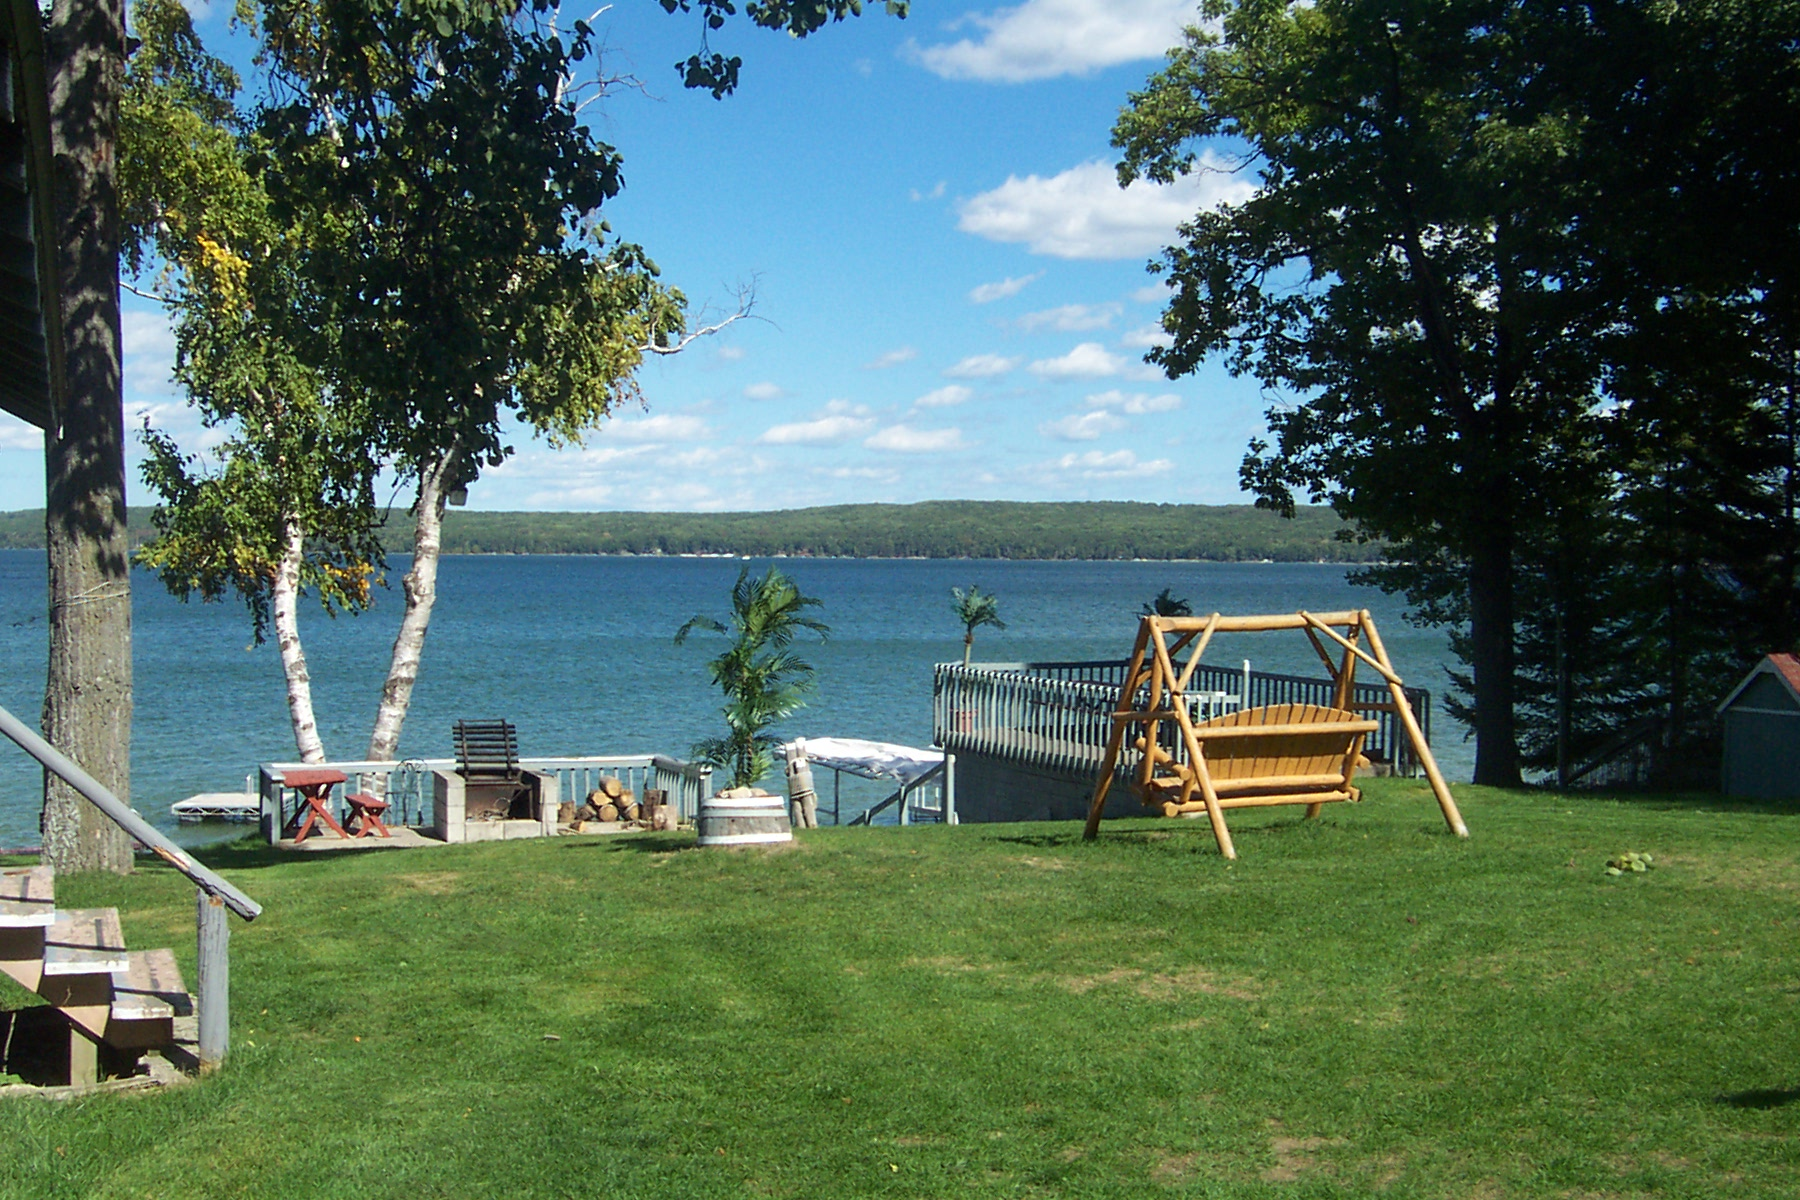 youngs s rentals cabins cabin directorytawas area directory member young getaway michigan resort beachfront